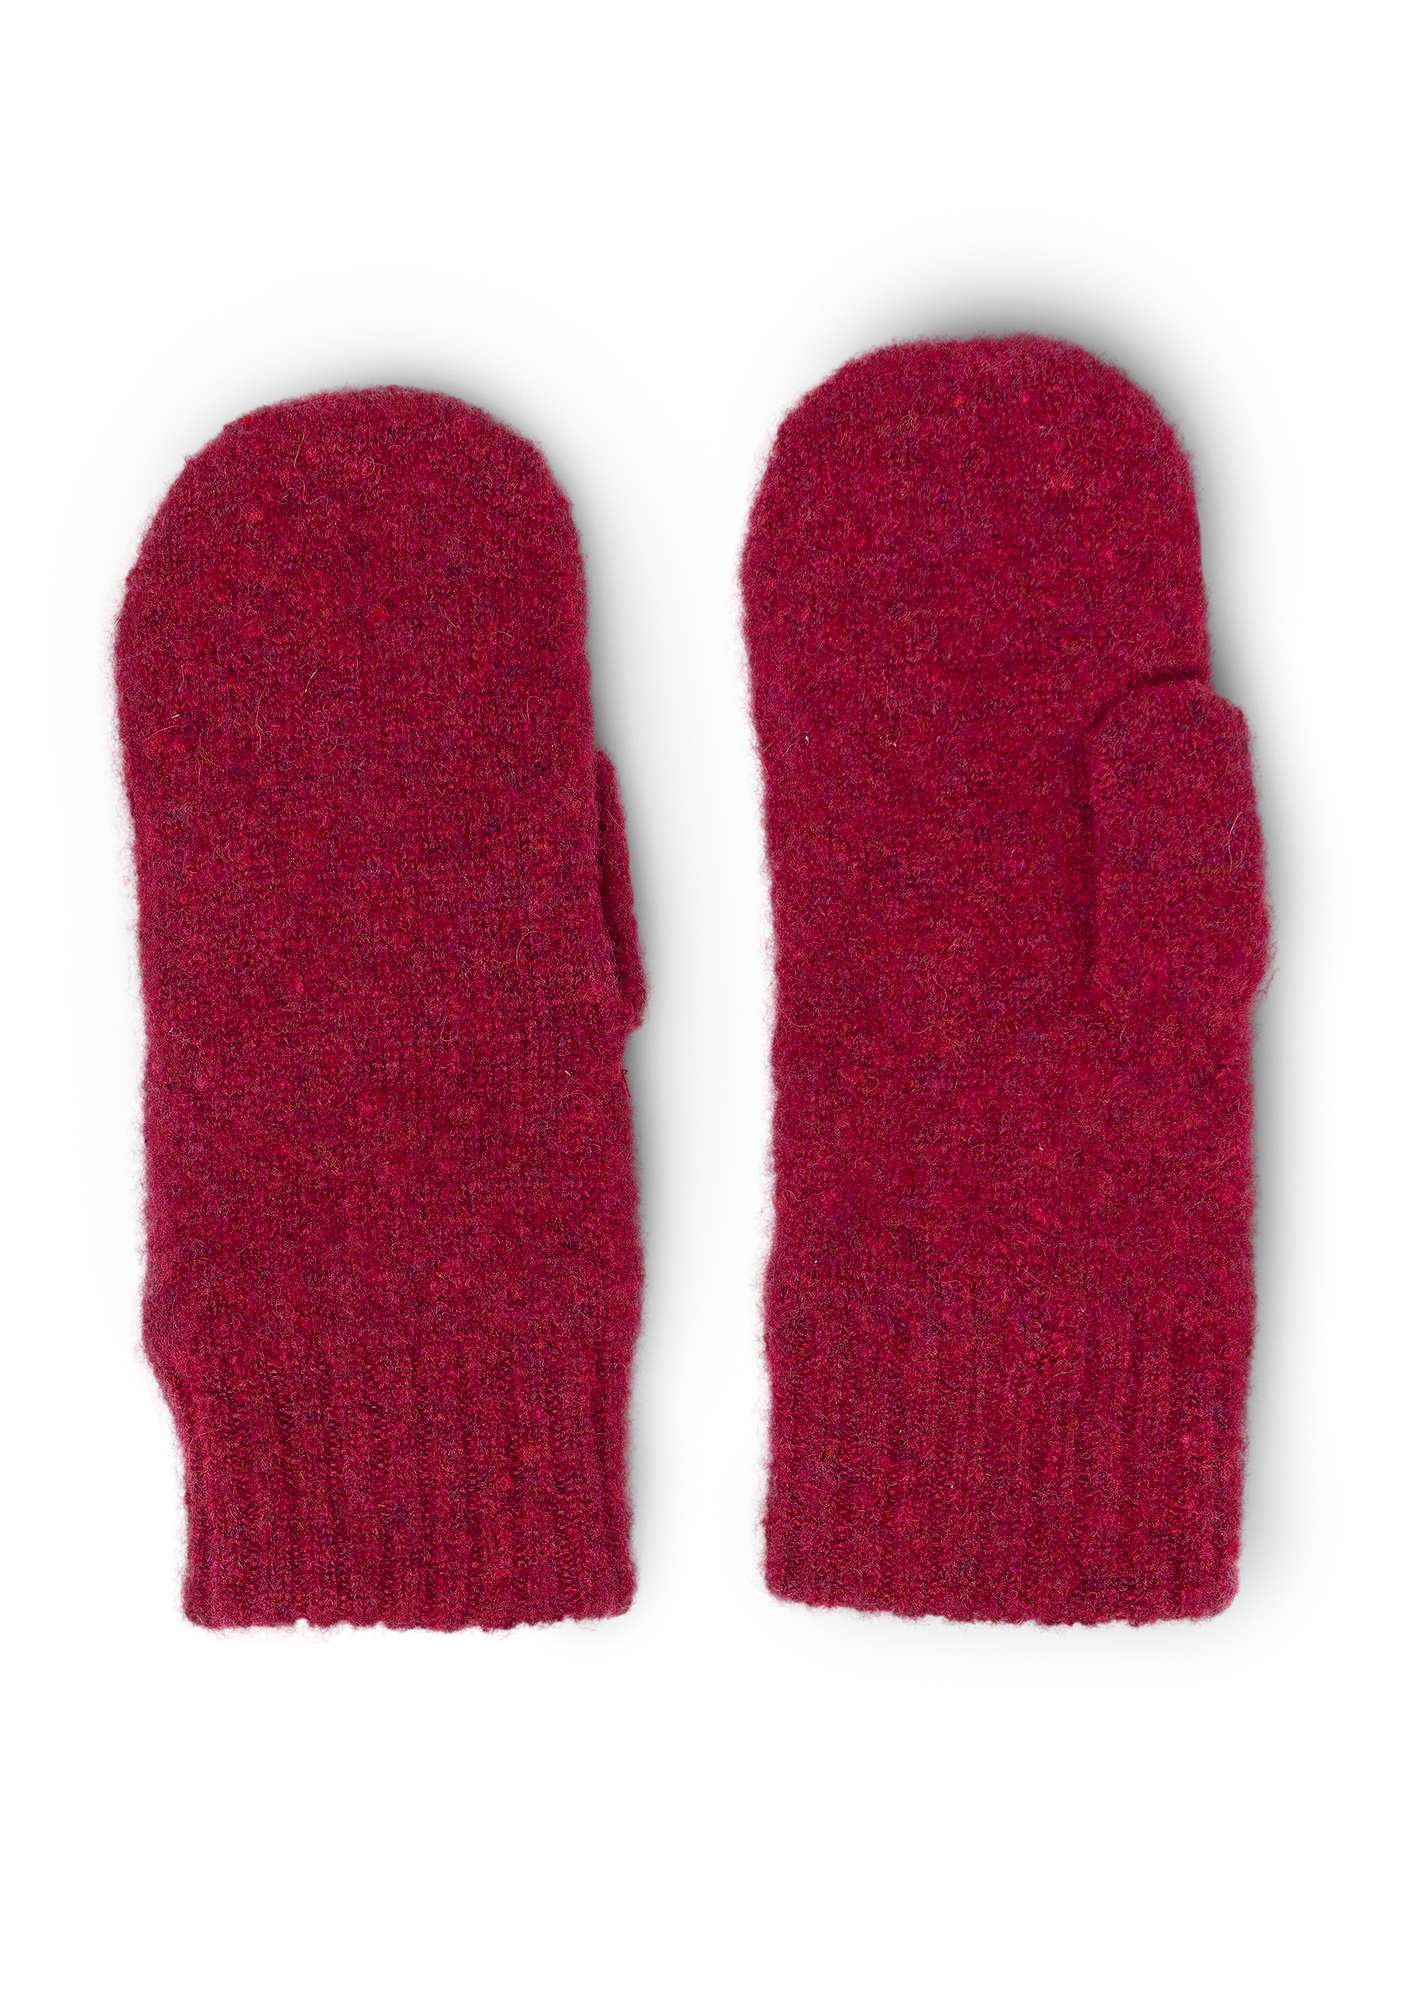 Knitted mittens in a recycled cashmere blend dark hibiscus